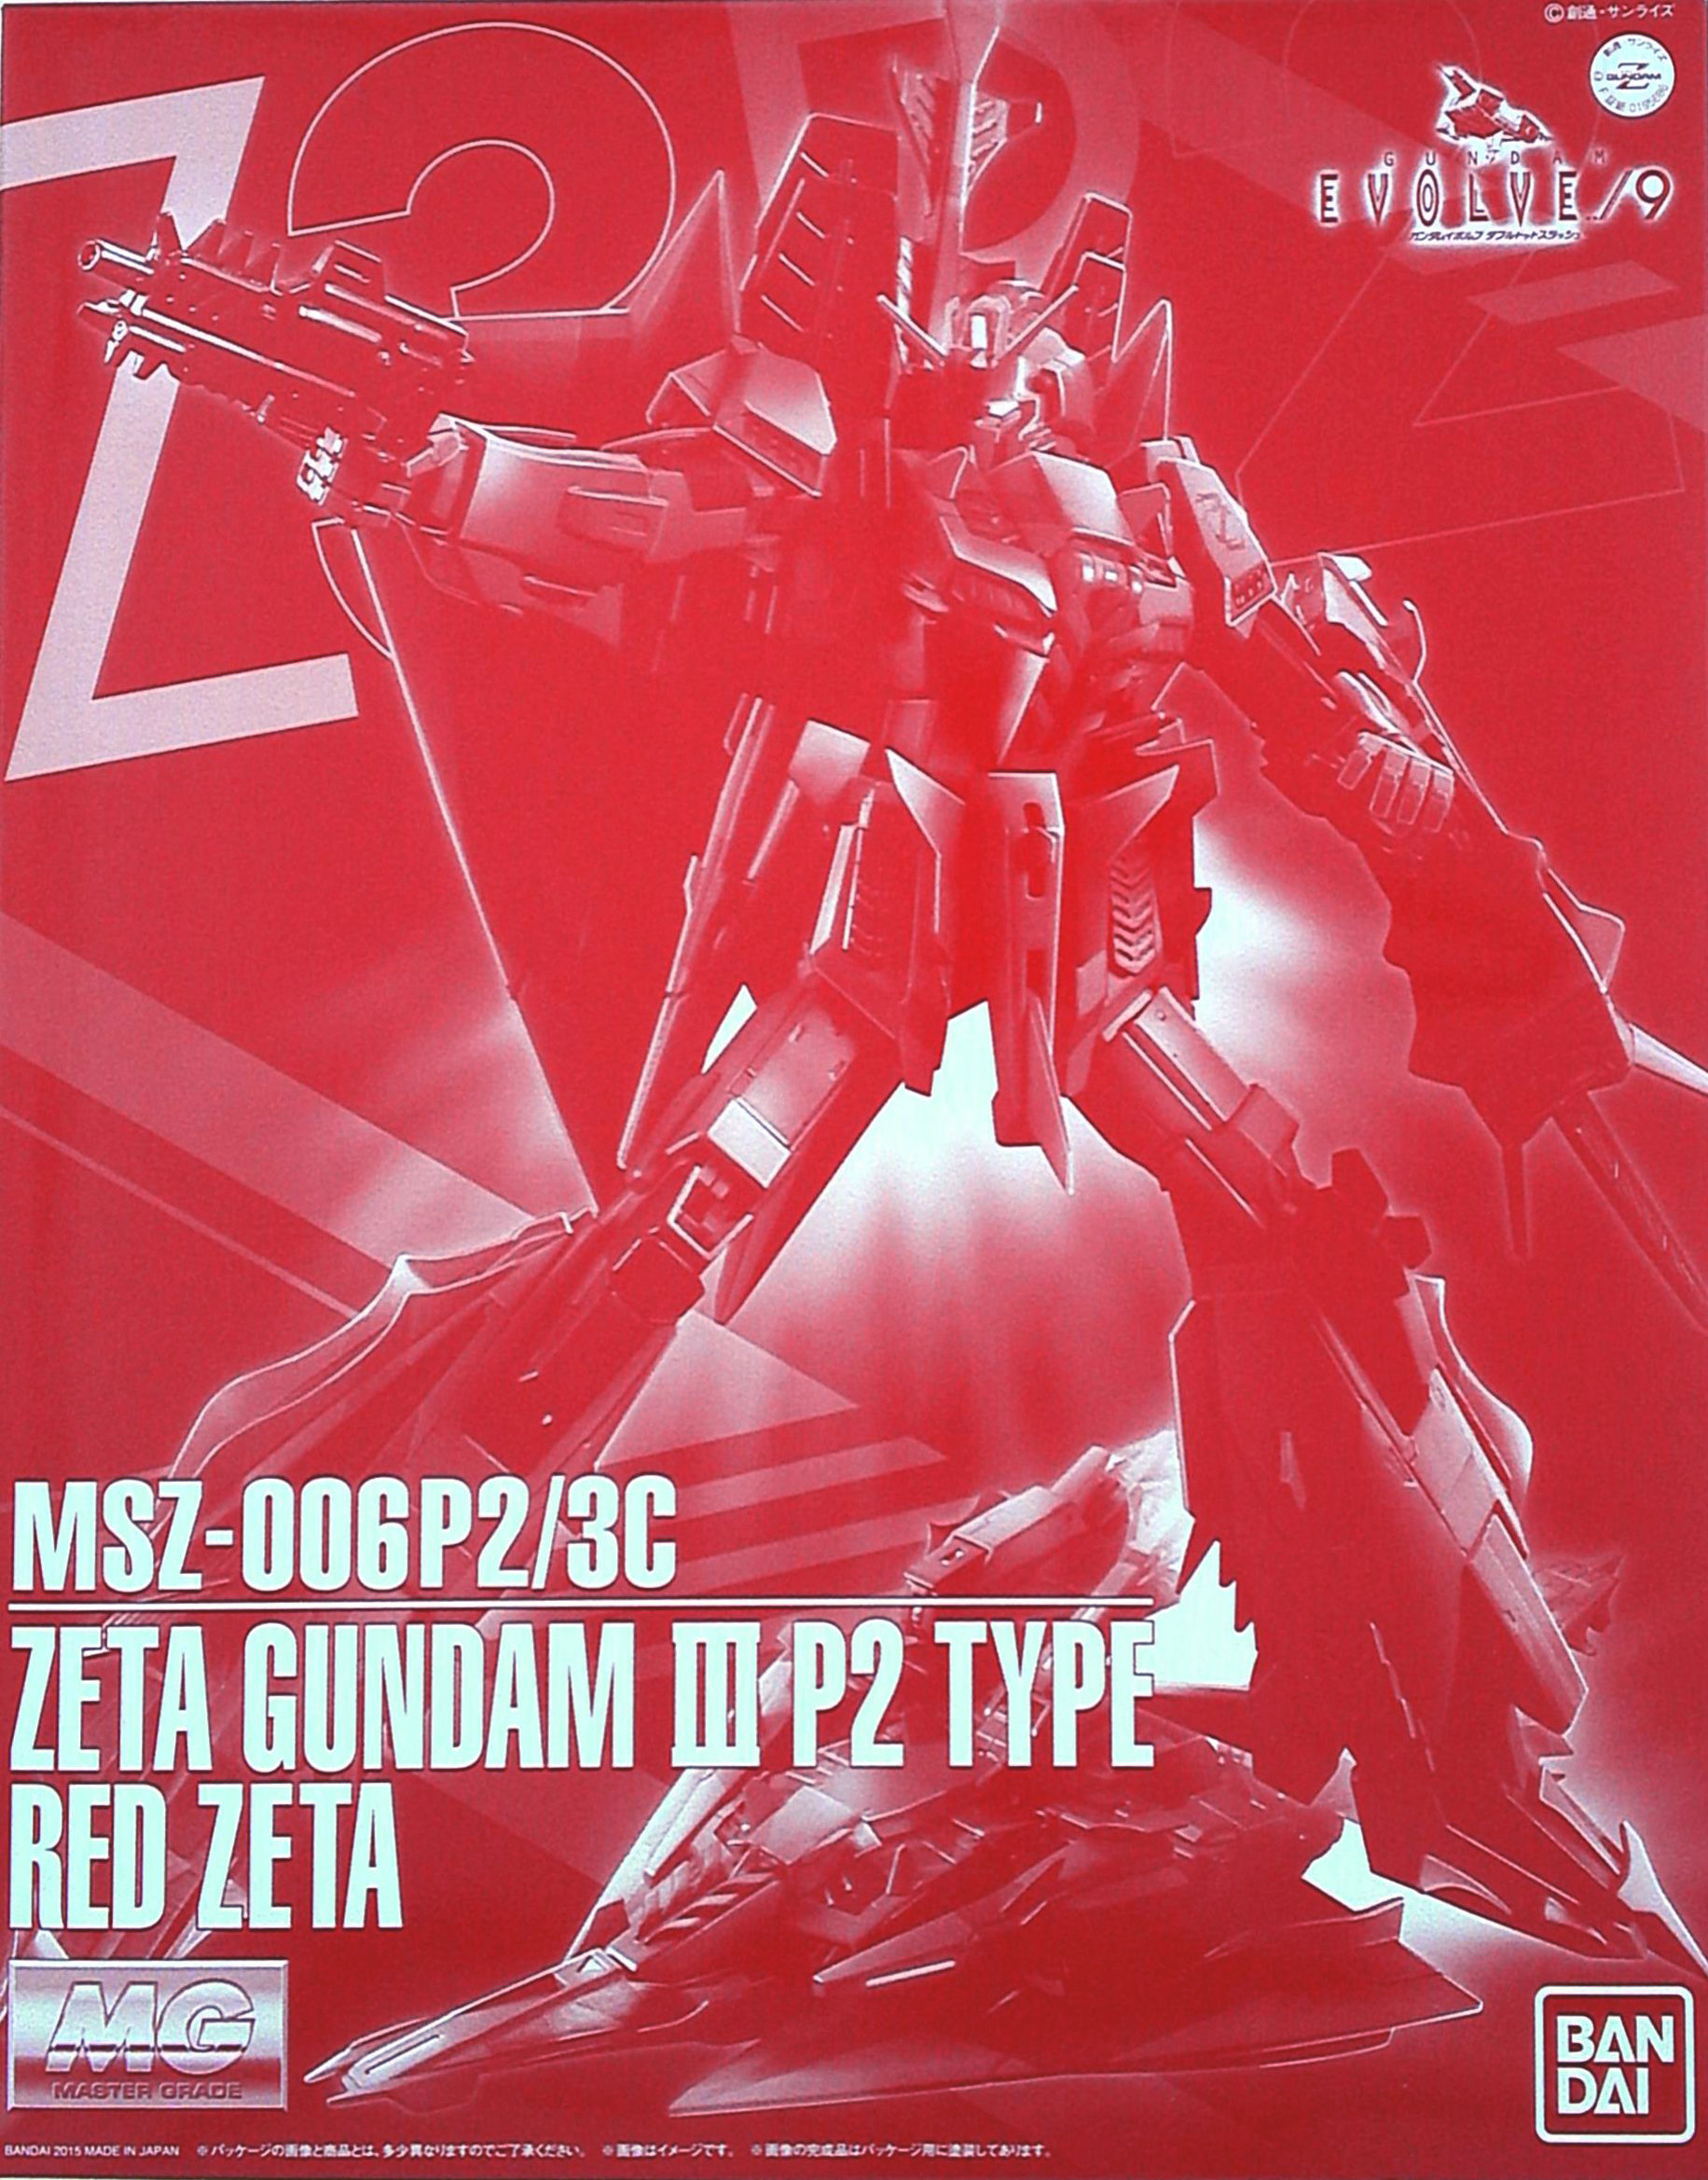 File:MG Zeta Gundam III P2 Type Red Zeta.jpg